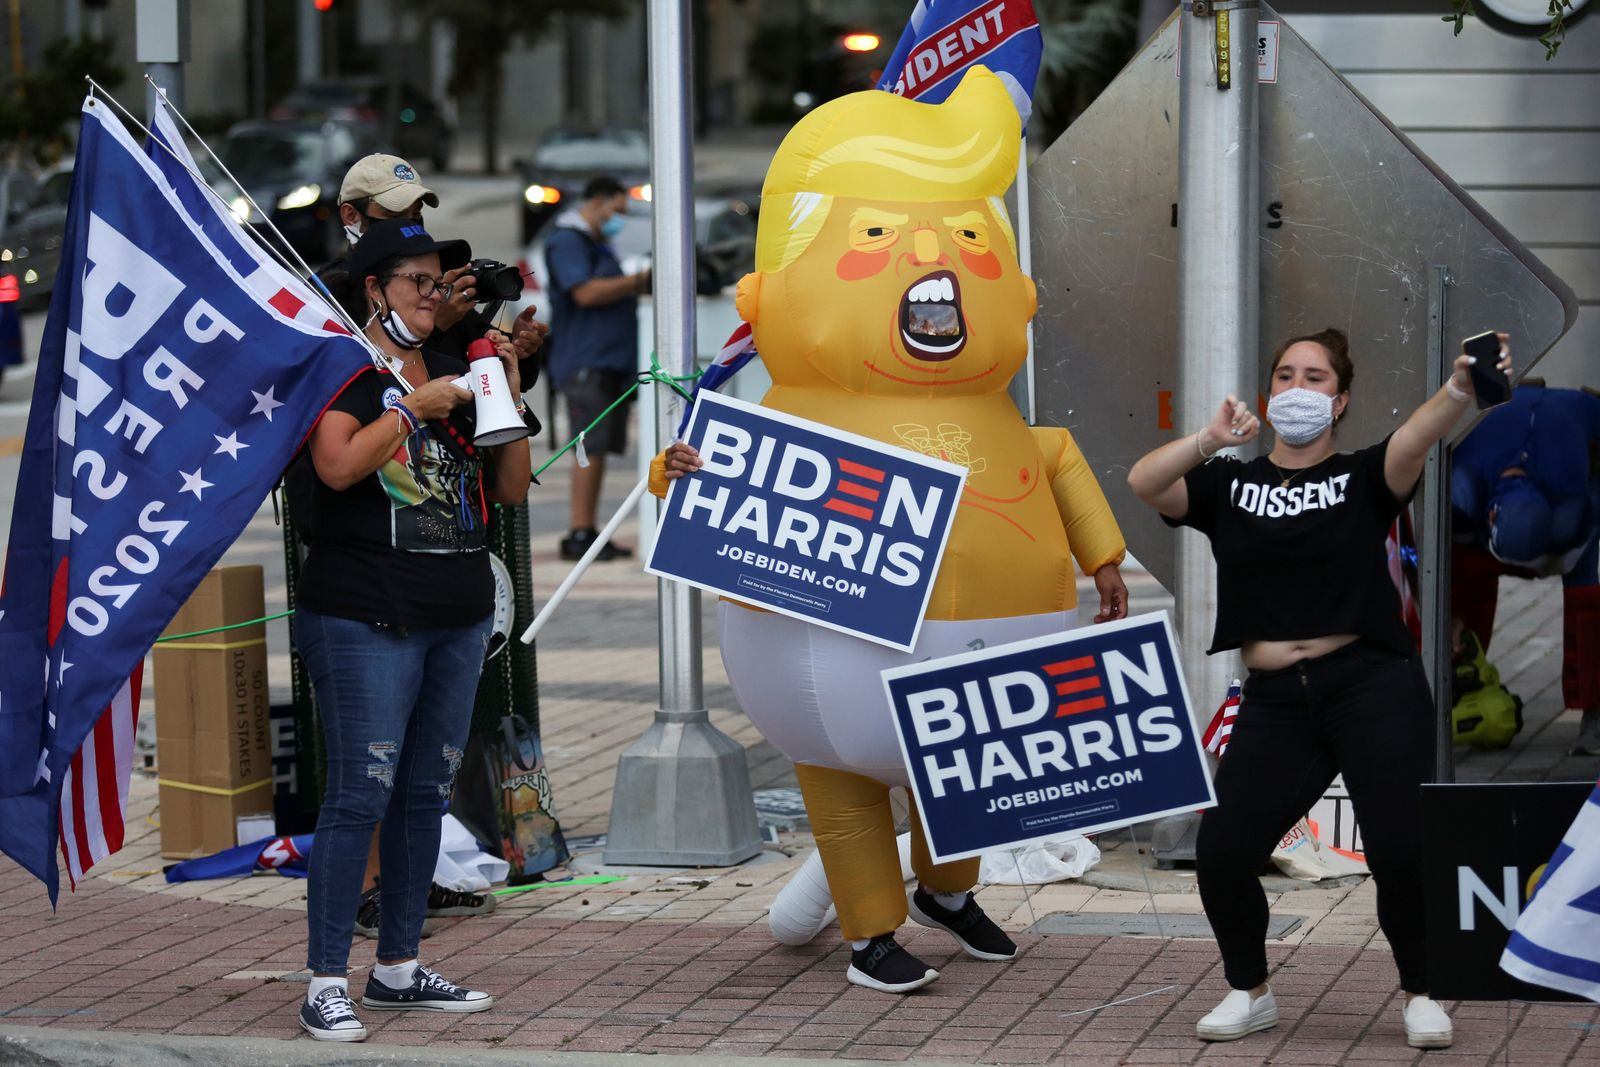 Supporters of Democratic U.S. presidential nominee Joe Biden gather outside Perez Art Museum before the arrival of U.S. President Donald Trump for a town hall in Miami